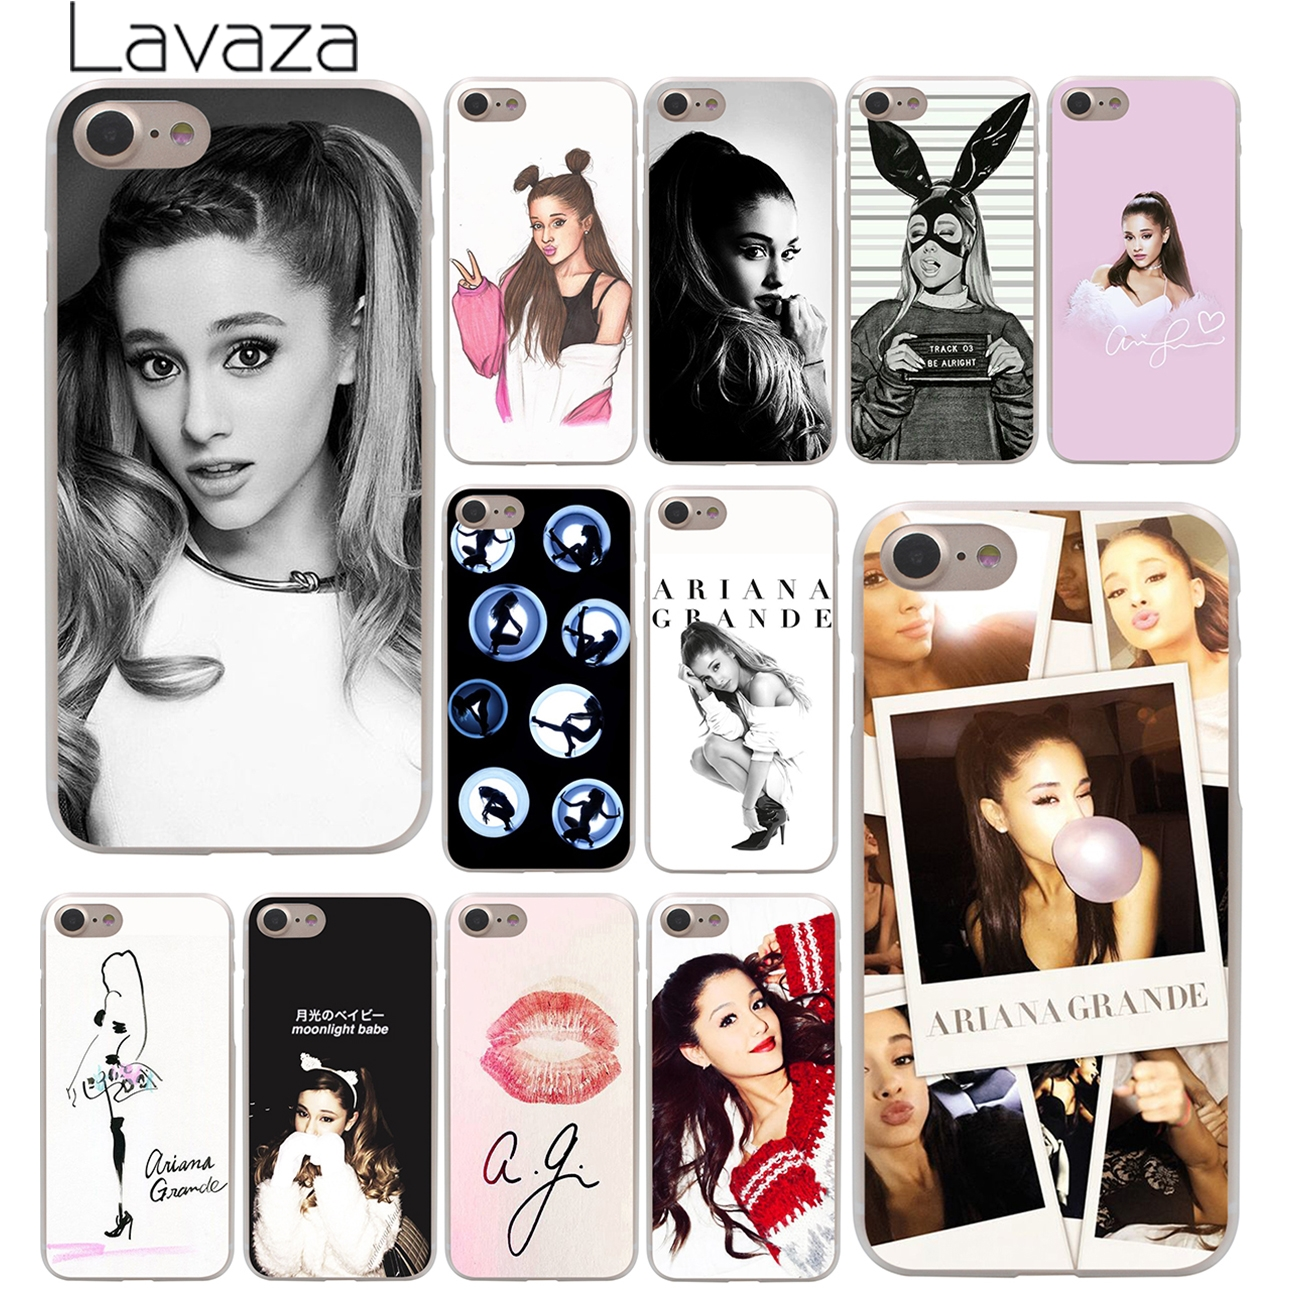 Lavaza Cat Ar <font><b>Ariana</b></font> <font><b>Grande</b></font> Hard Phone <font><b>Case</b></font> for <font><b>iPhone</b></font> XR X XS 11 Pro Max 10 7 8 6 <font><b>6S</b></font> 5 5S SE 4 4S Cover image